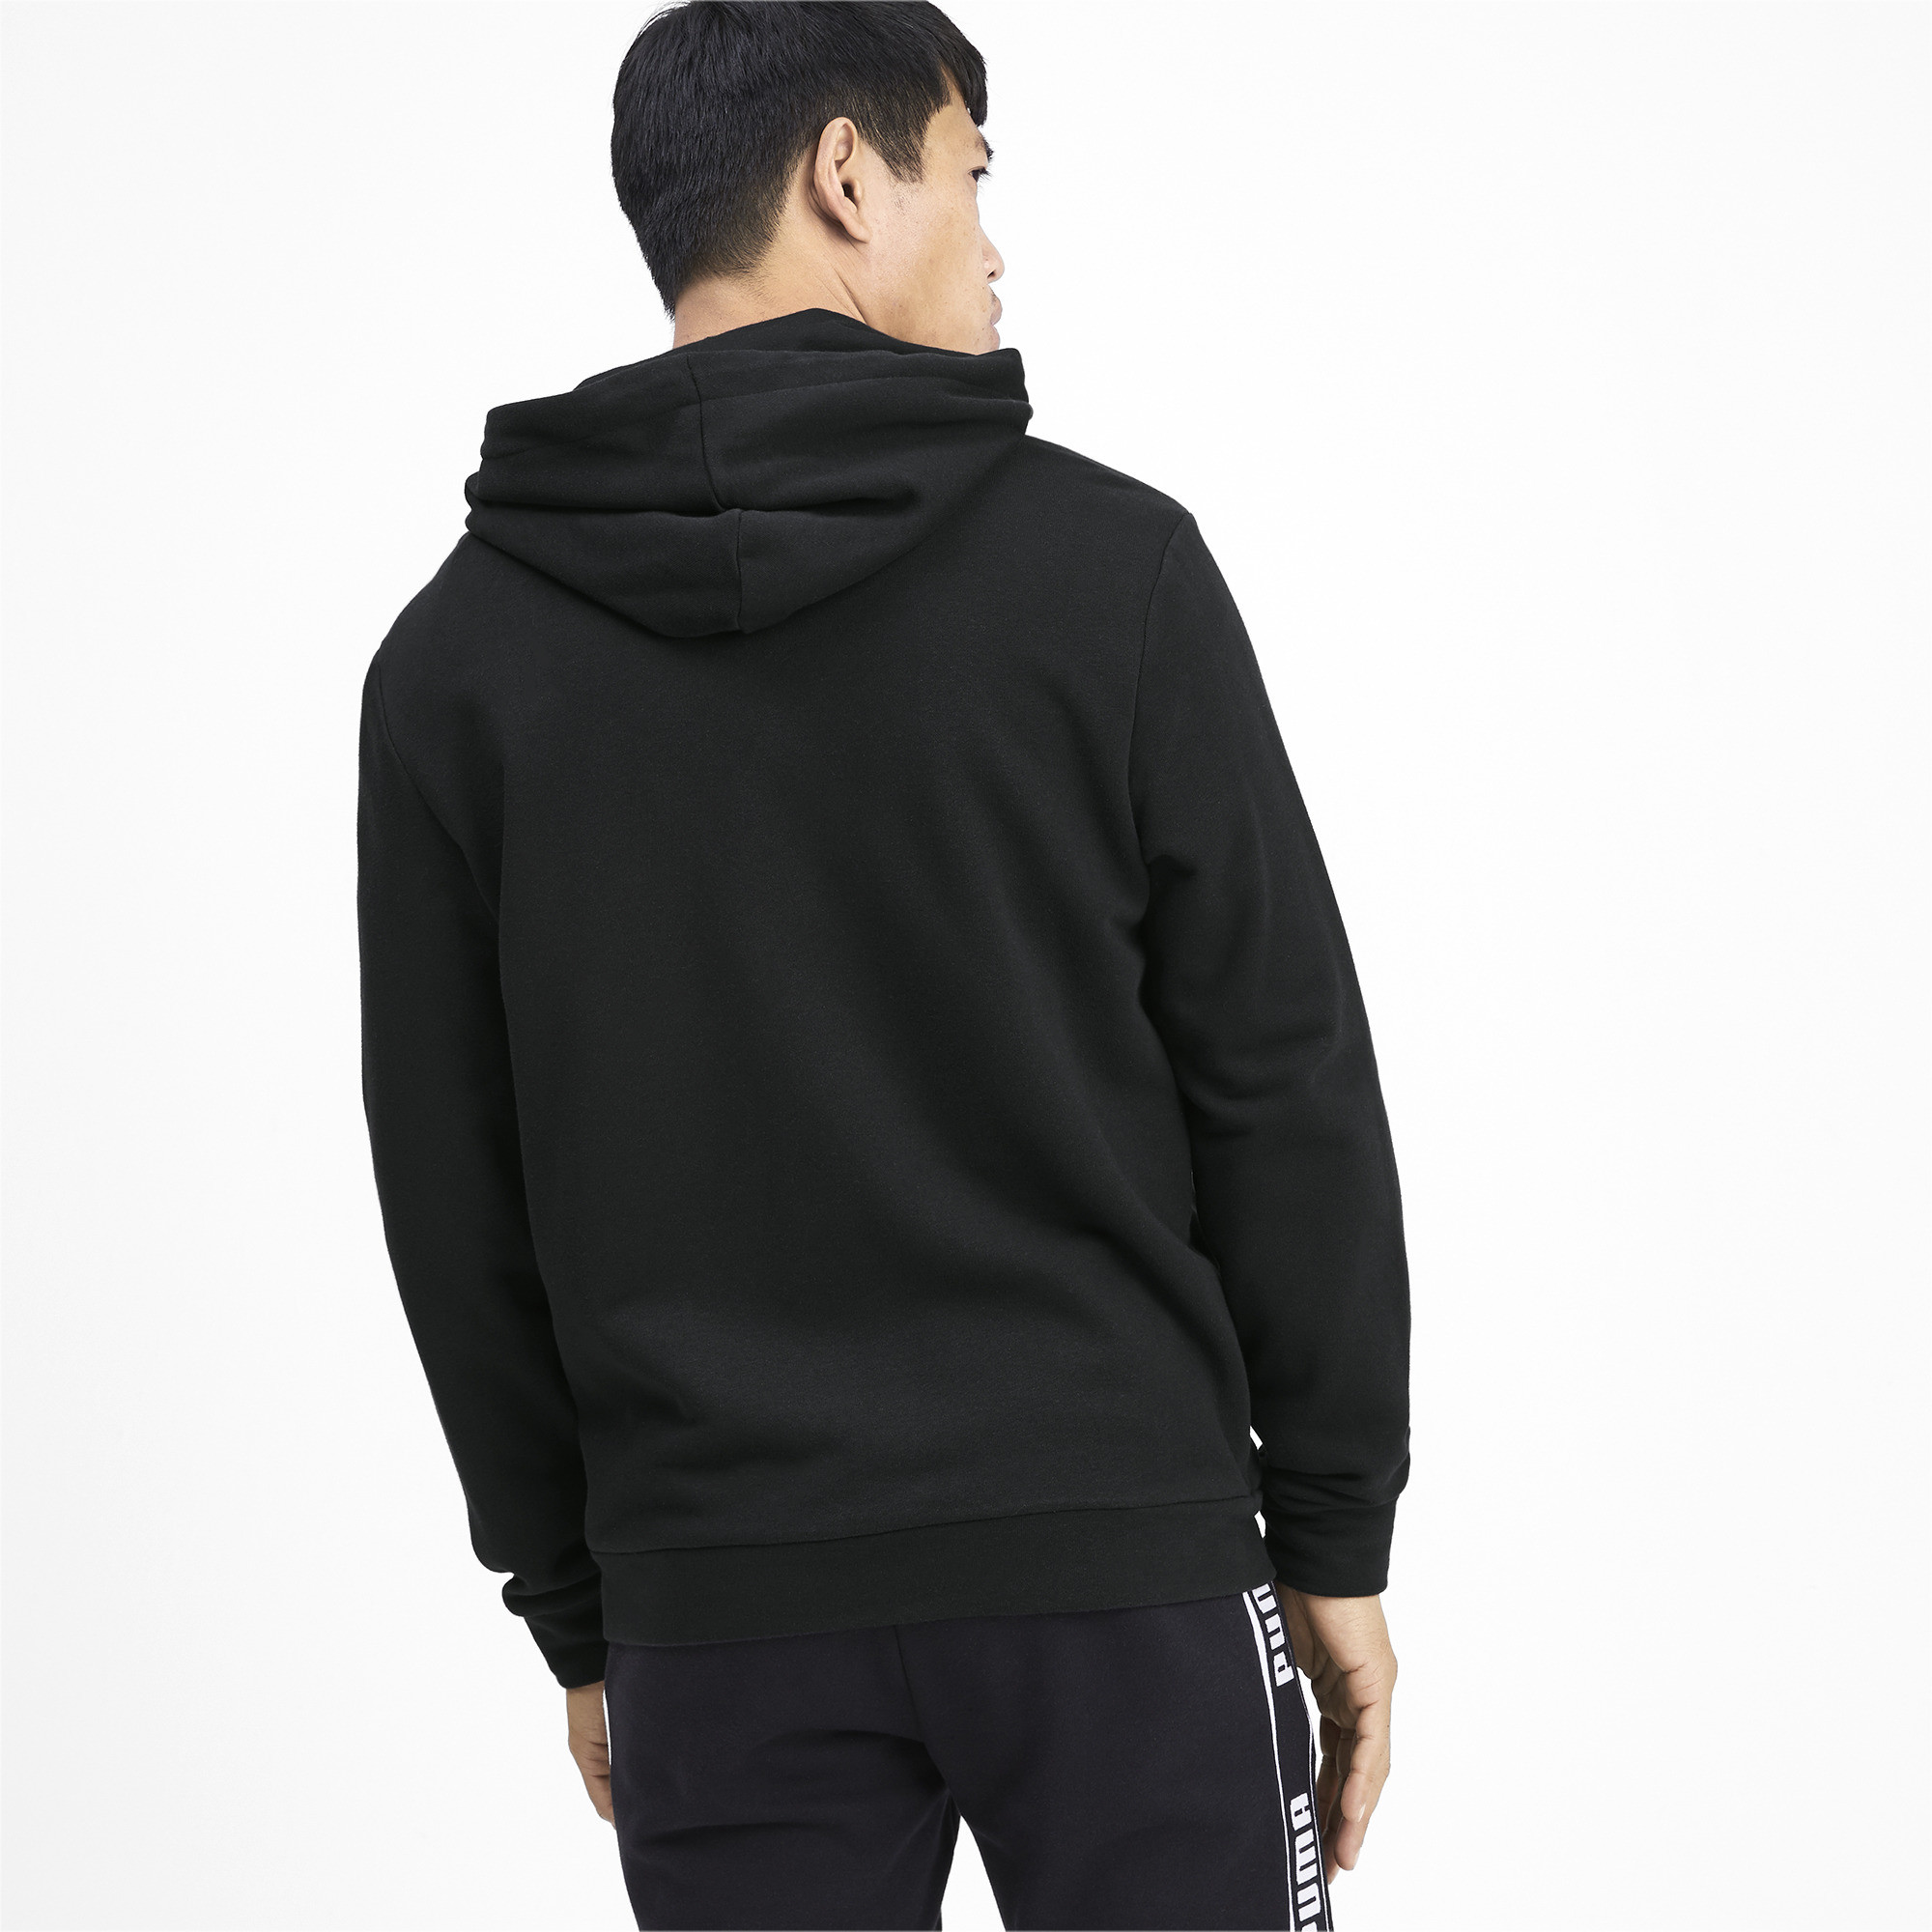 PUMA-Amplified-Men-039-s-Hooded-Jacket-Men-Sweat-Basics thumbnail 15